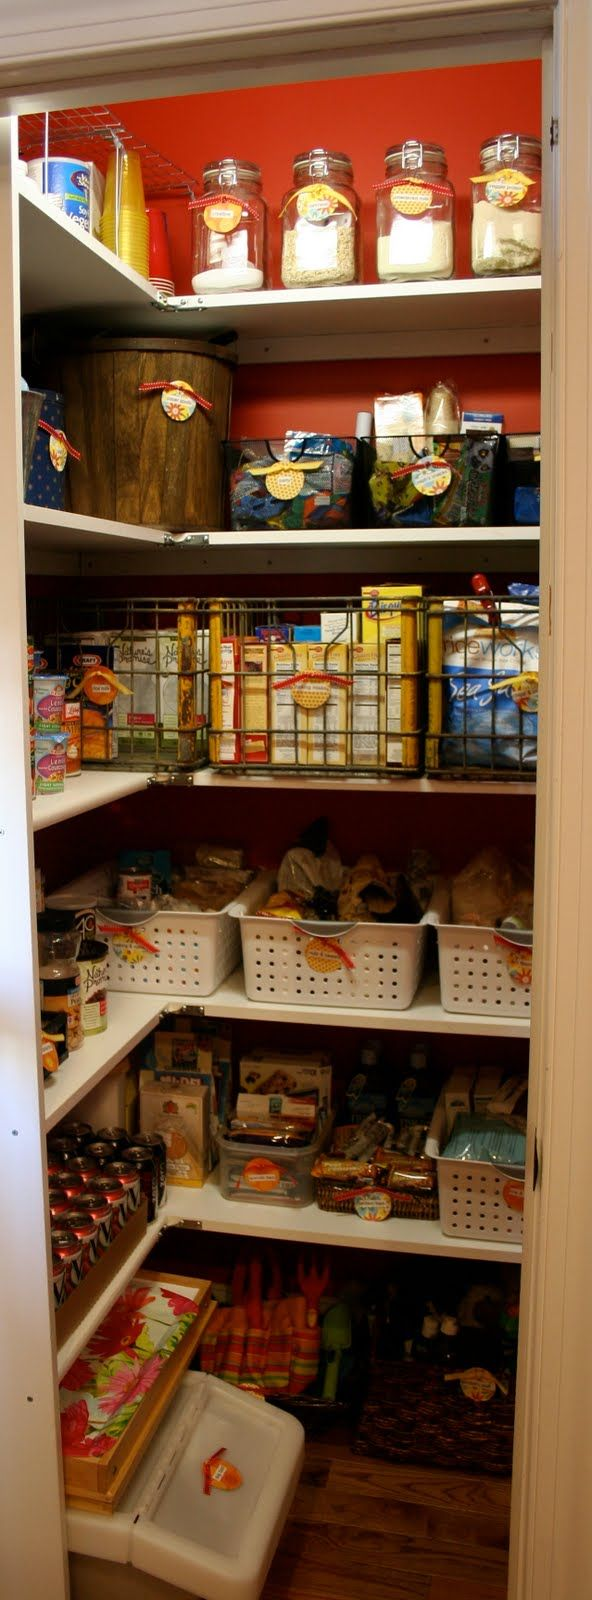 another pantry